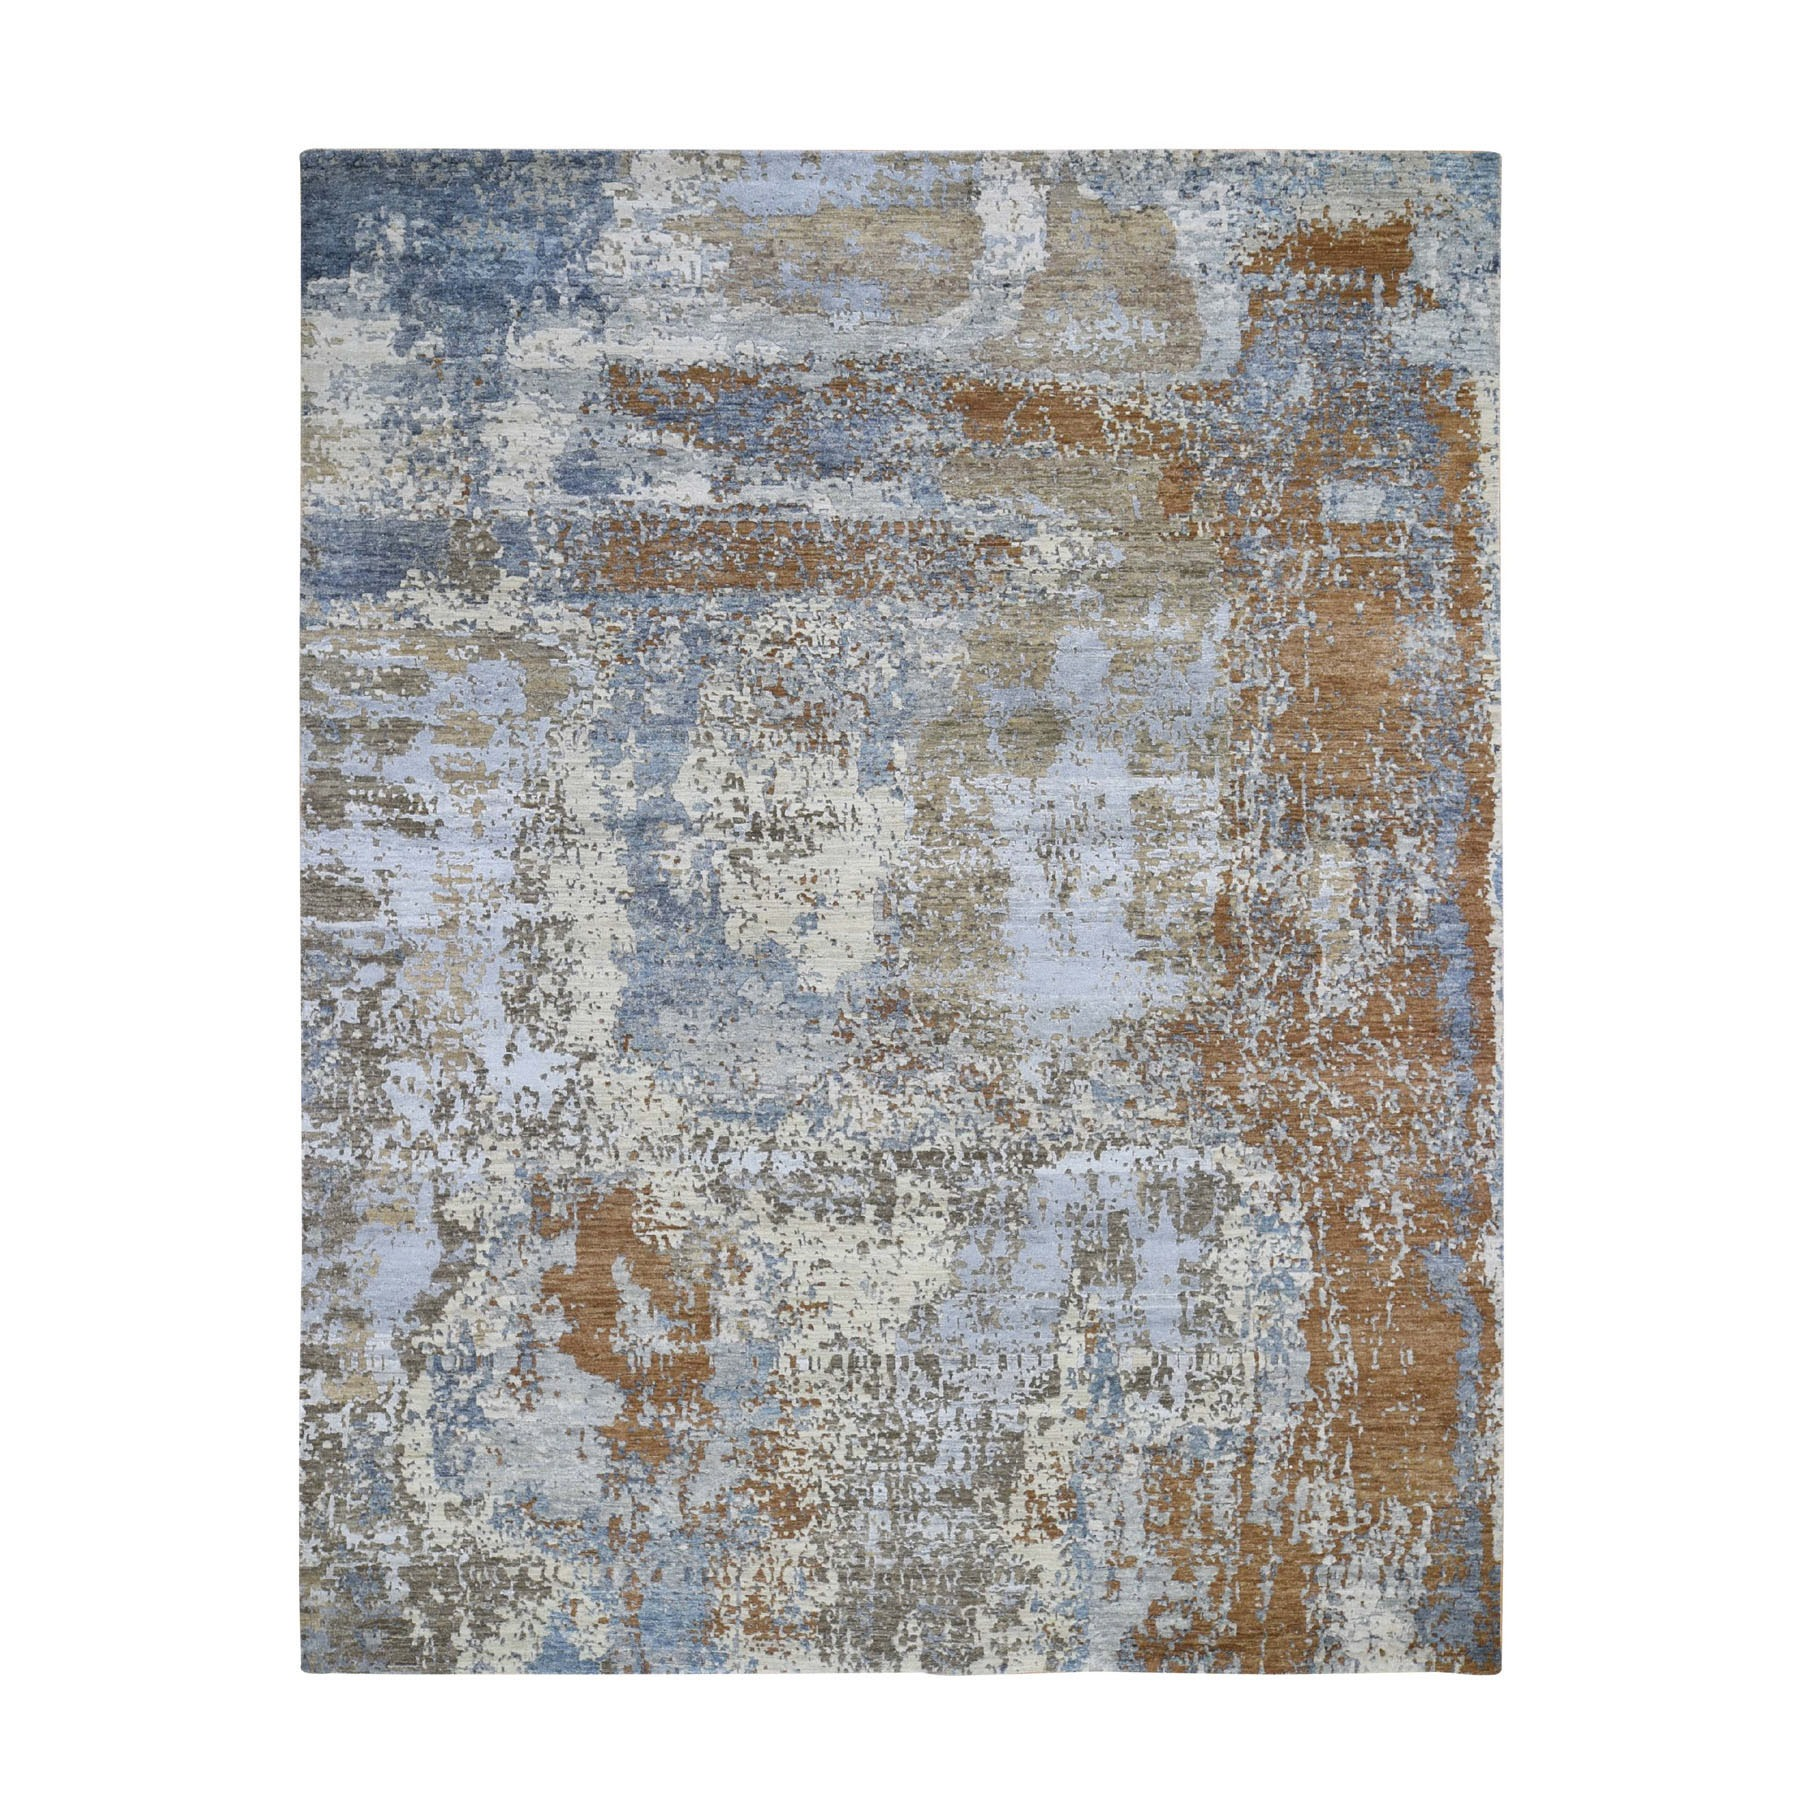 8'x10' Honey Brown Abstract Design Wool and Silk Tight Knot Hand Knotted Oriental Rug 47700